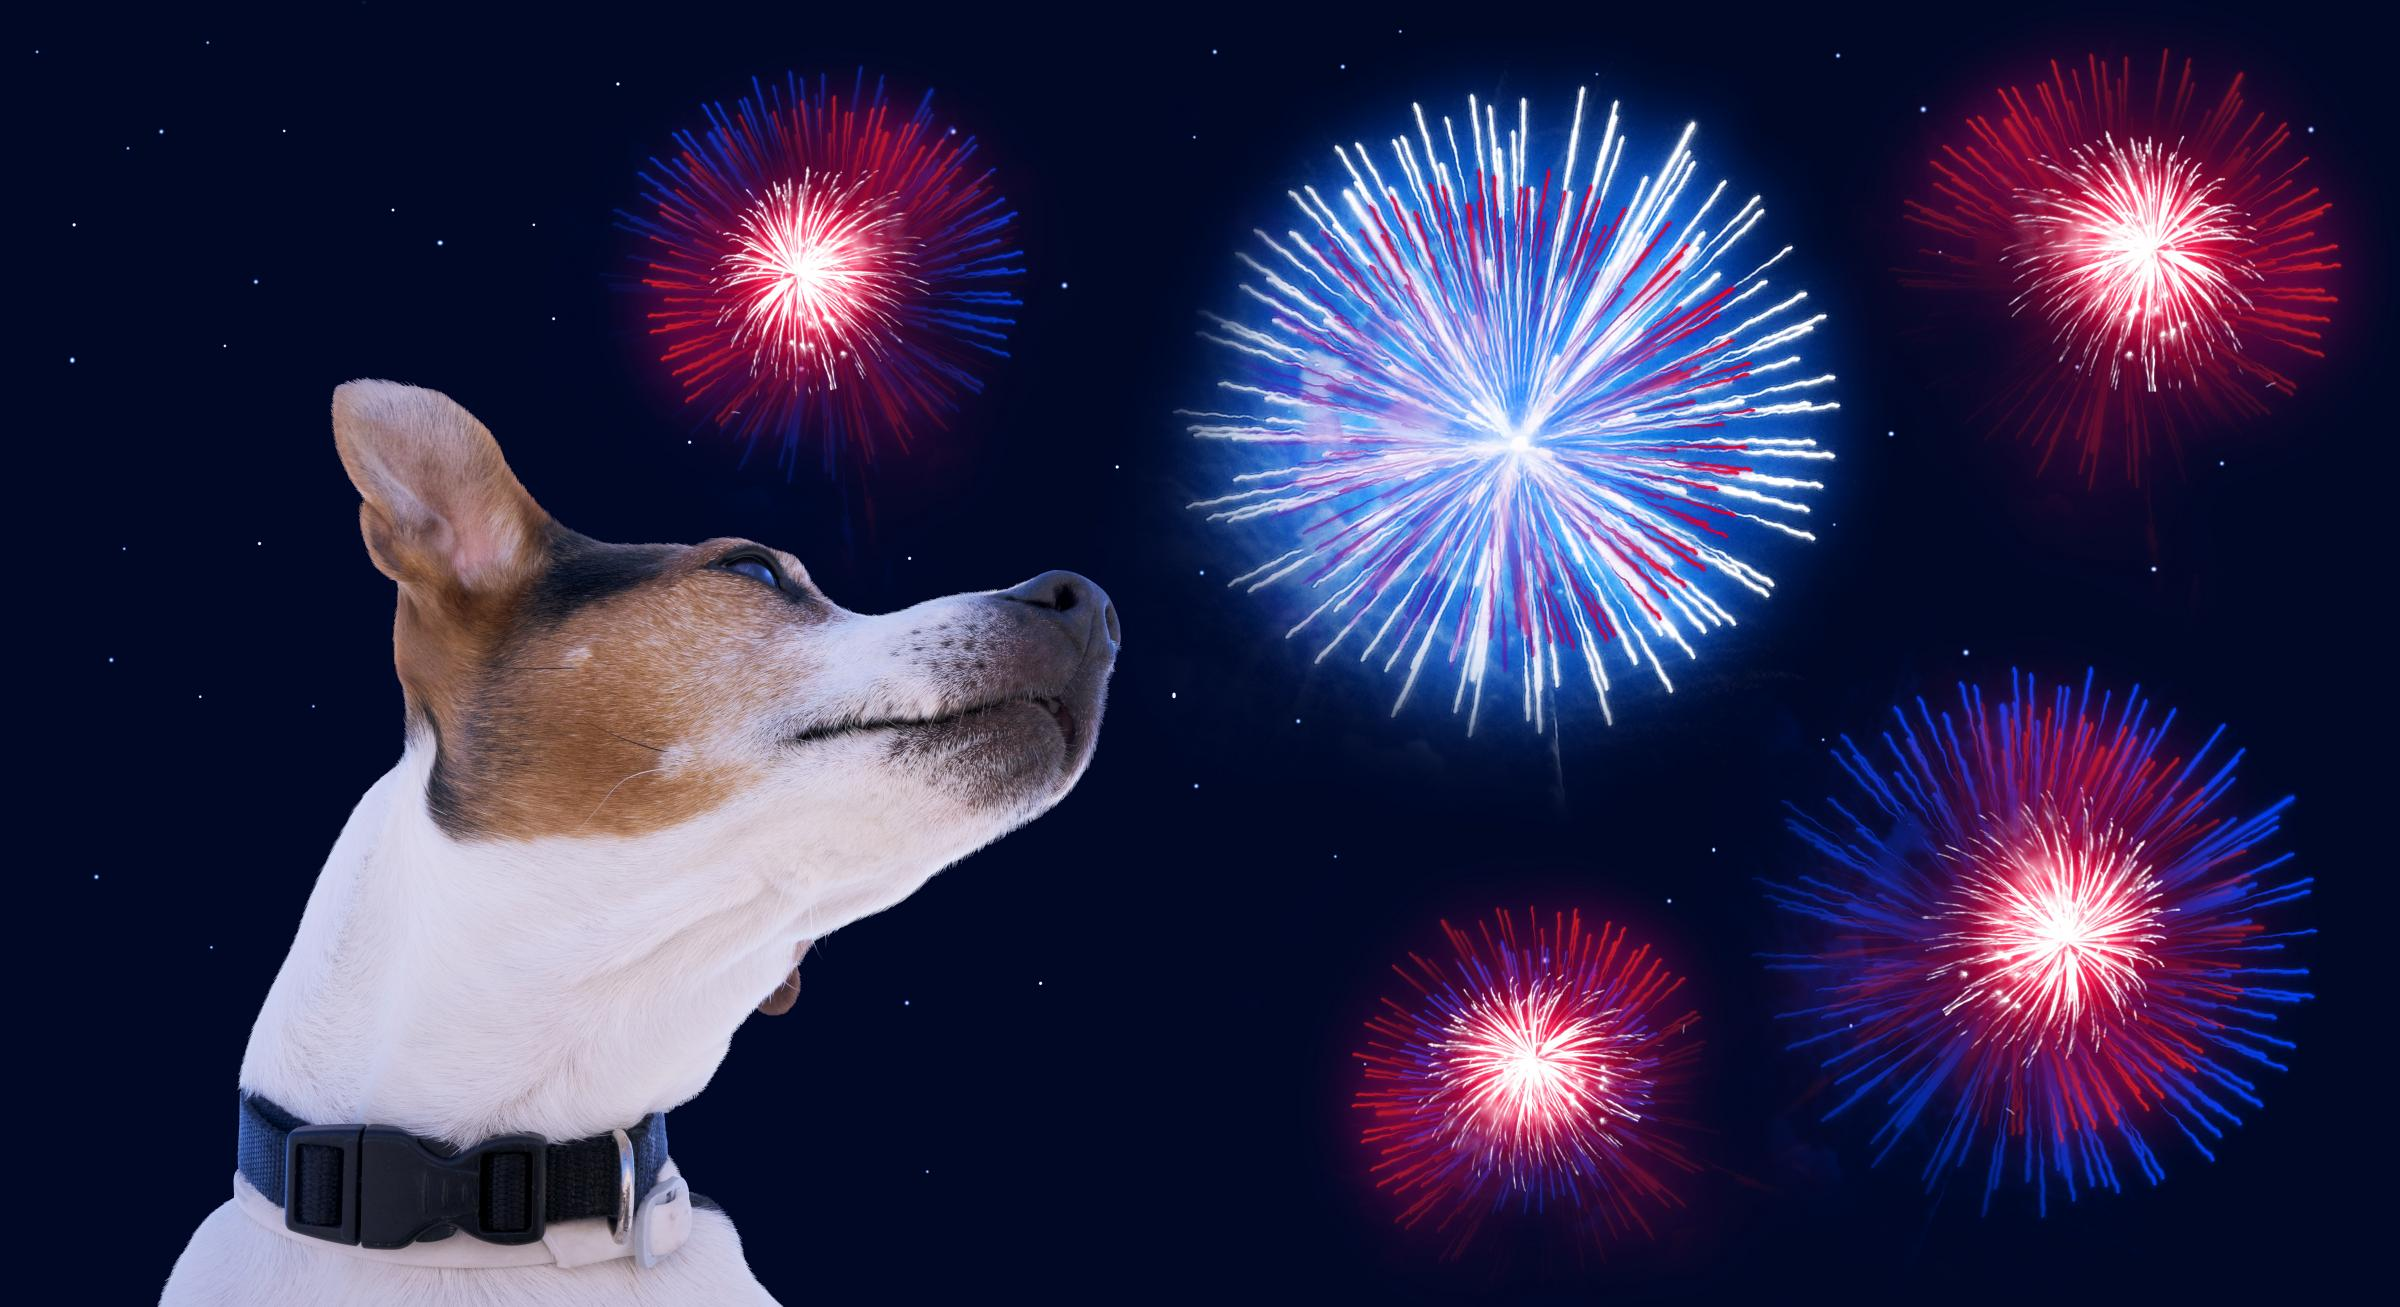 Dogs don't like fireworks